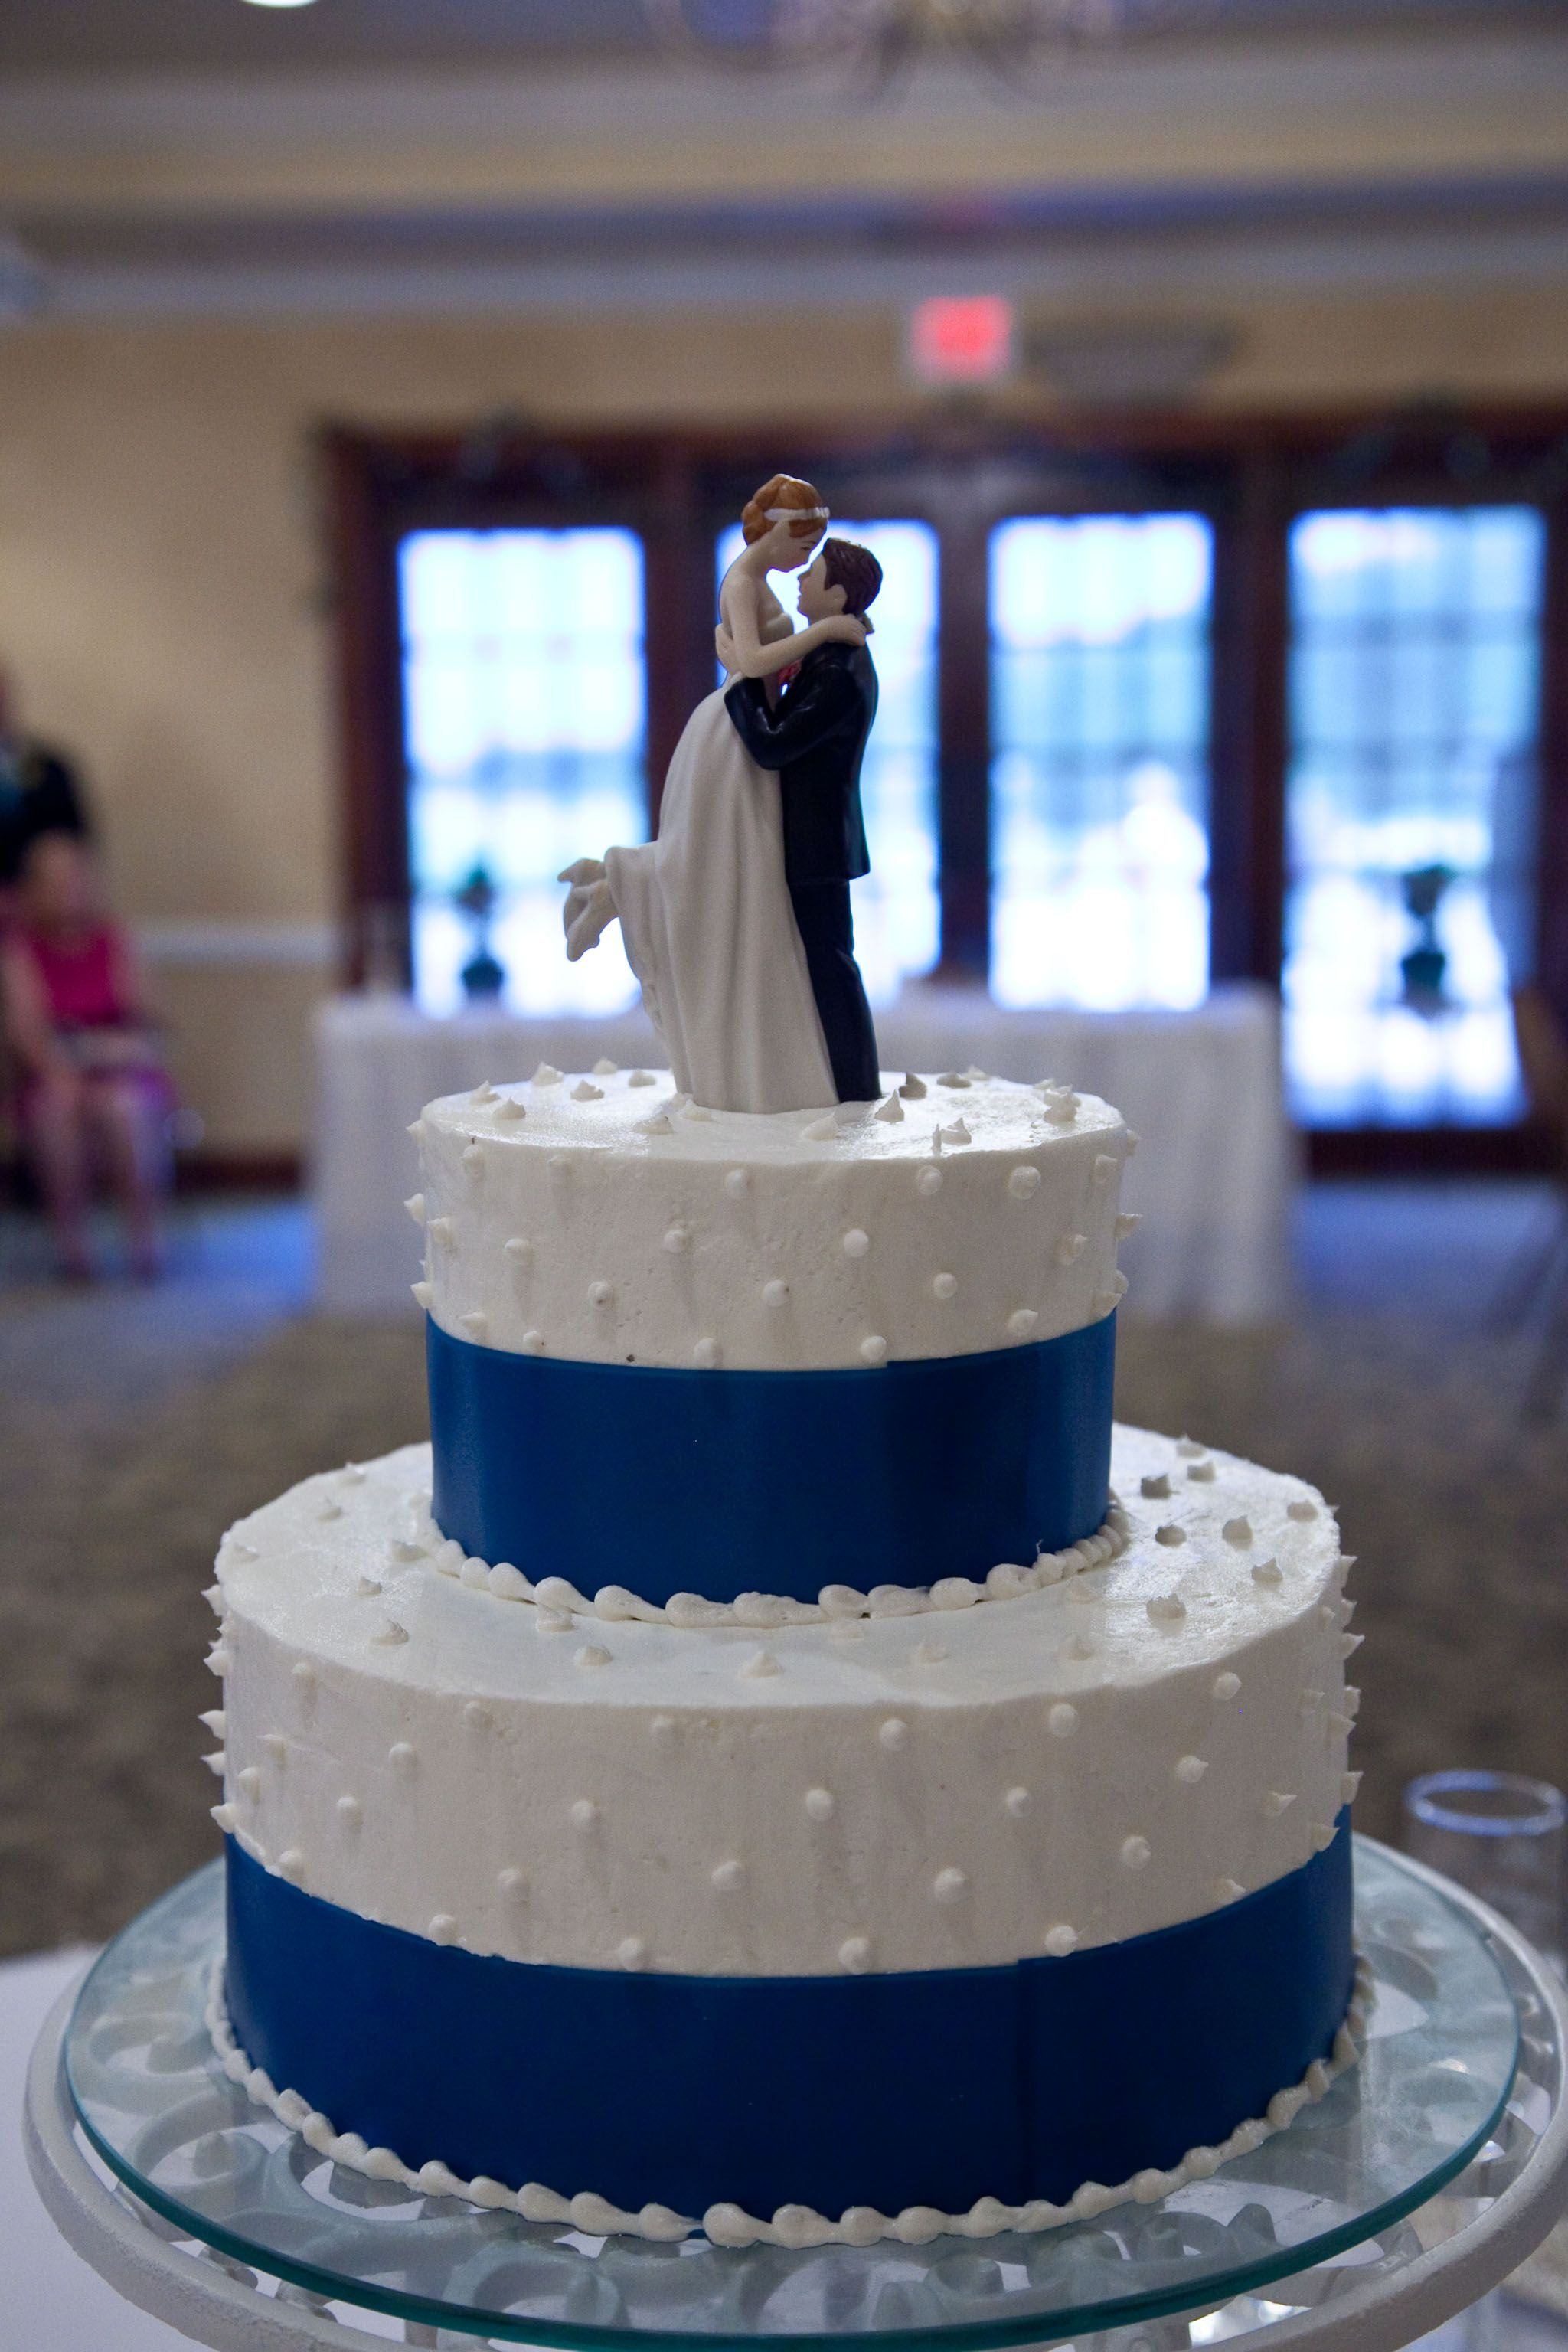 Our Chocolate Wedding Cake Blue Ribbon Around With Edible Pearls